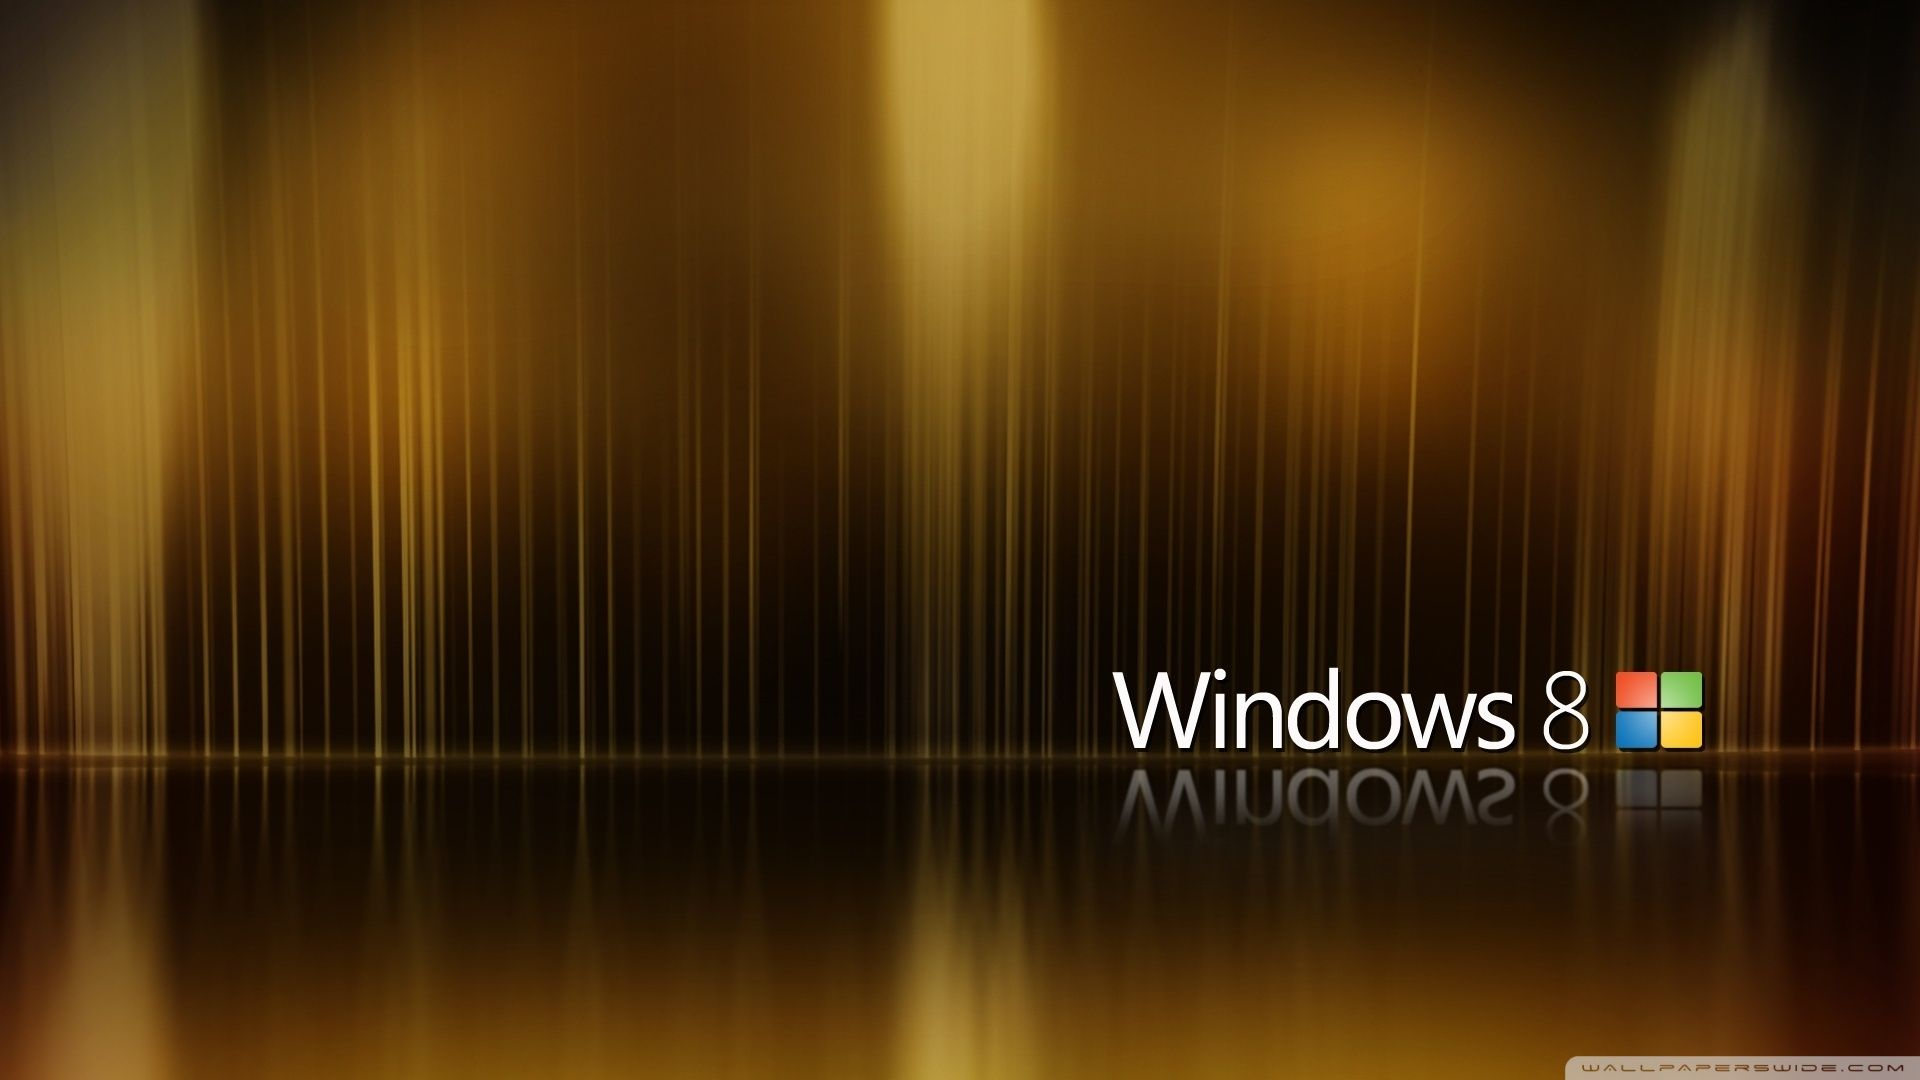 image for free windows 8 computer hd wallpaper